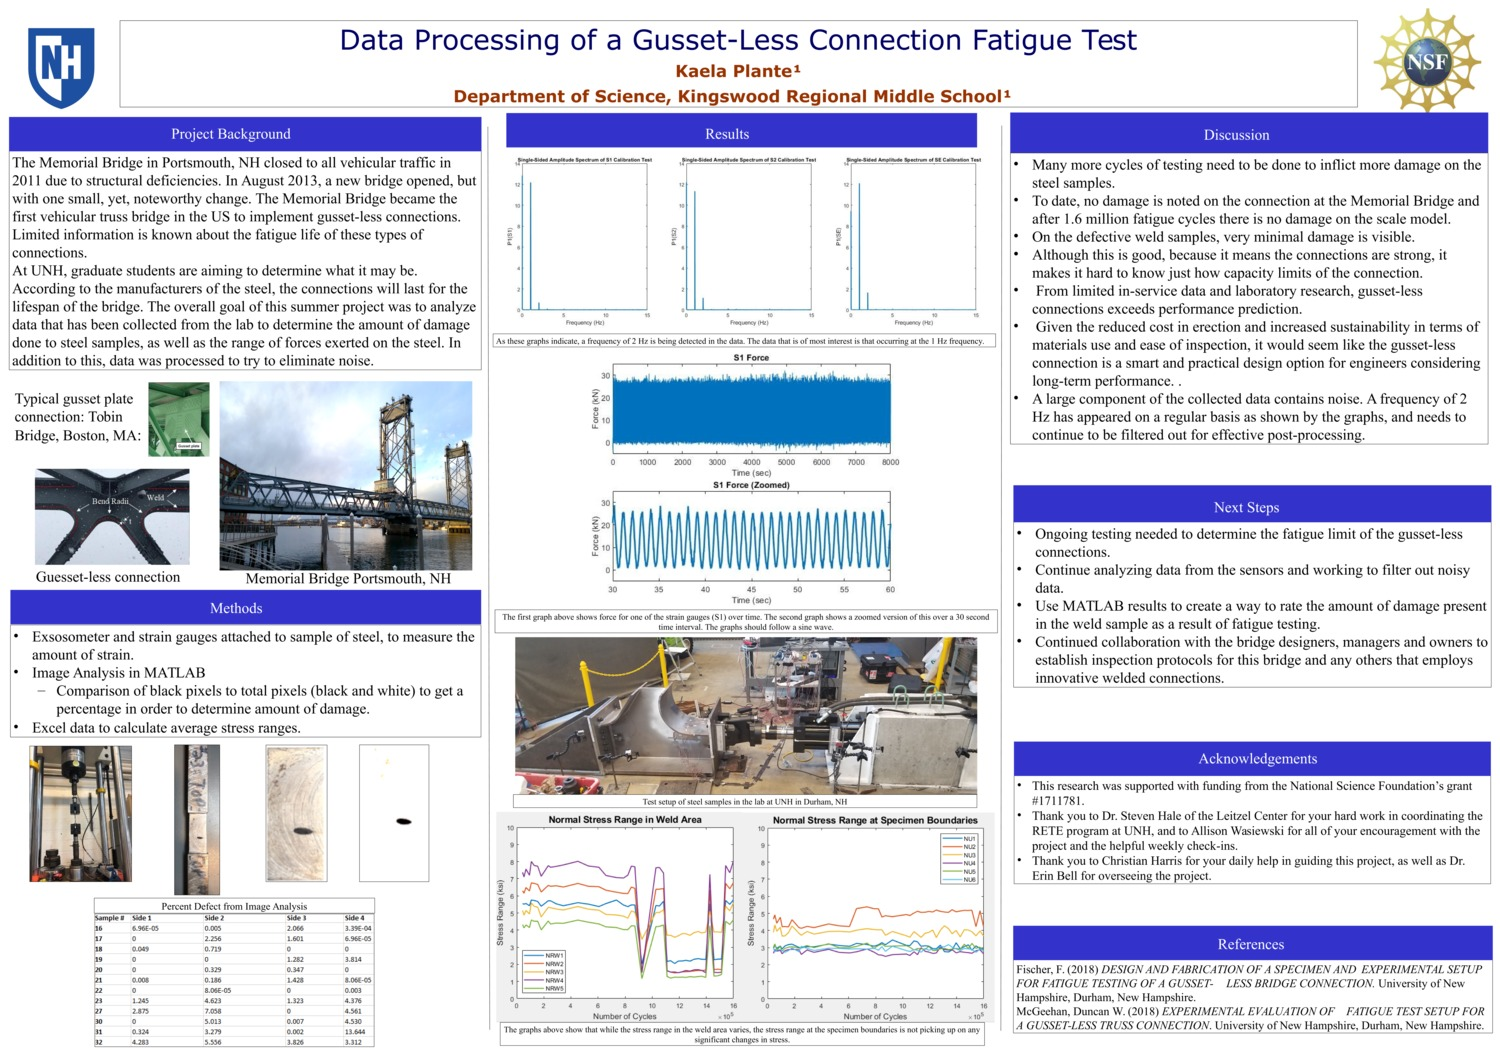 Data Processing Of A Gusset-Less Connection Fatigue Test  by kplante13